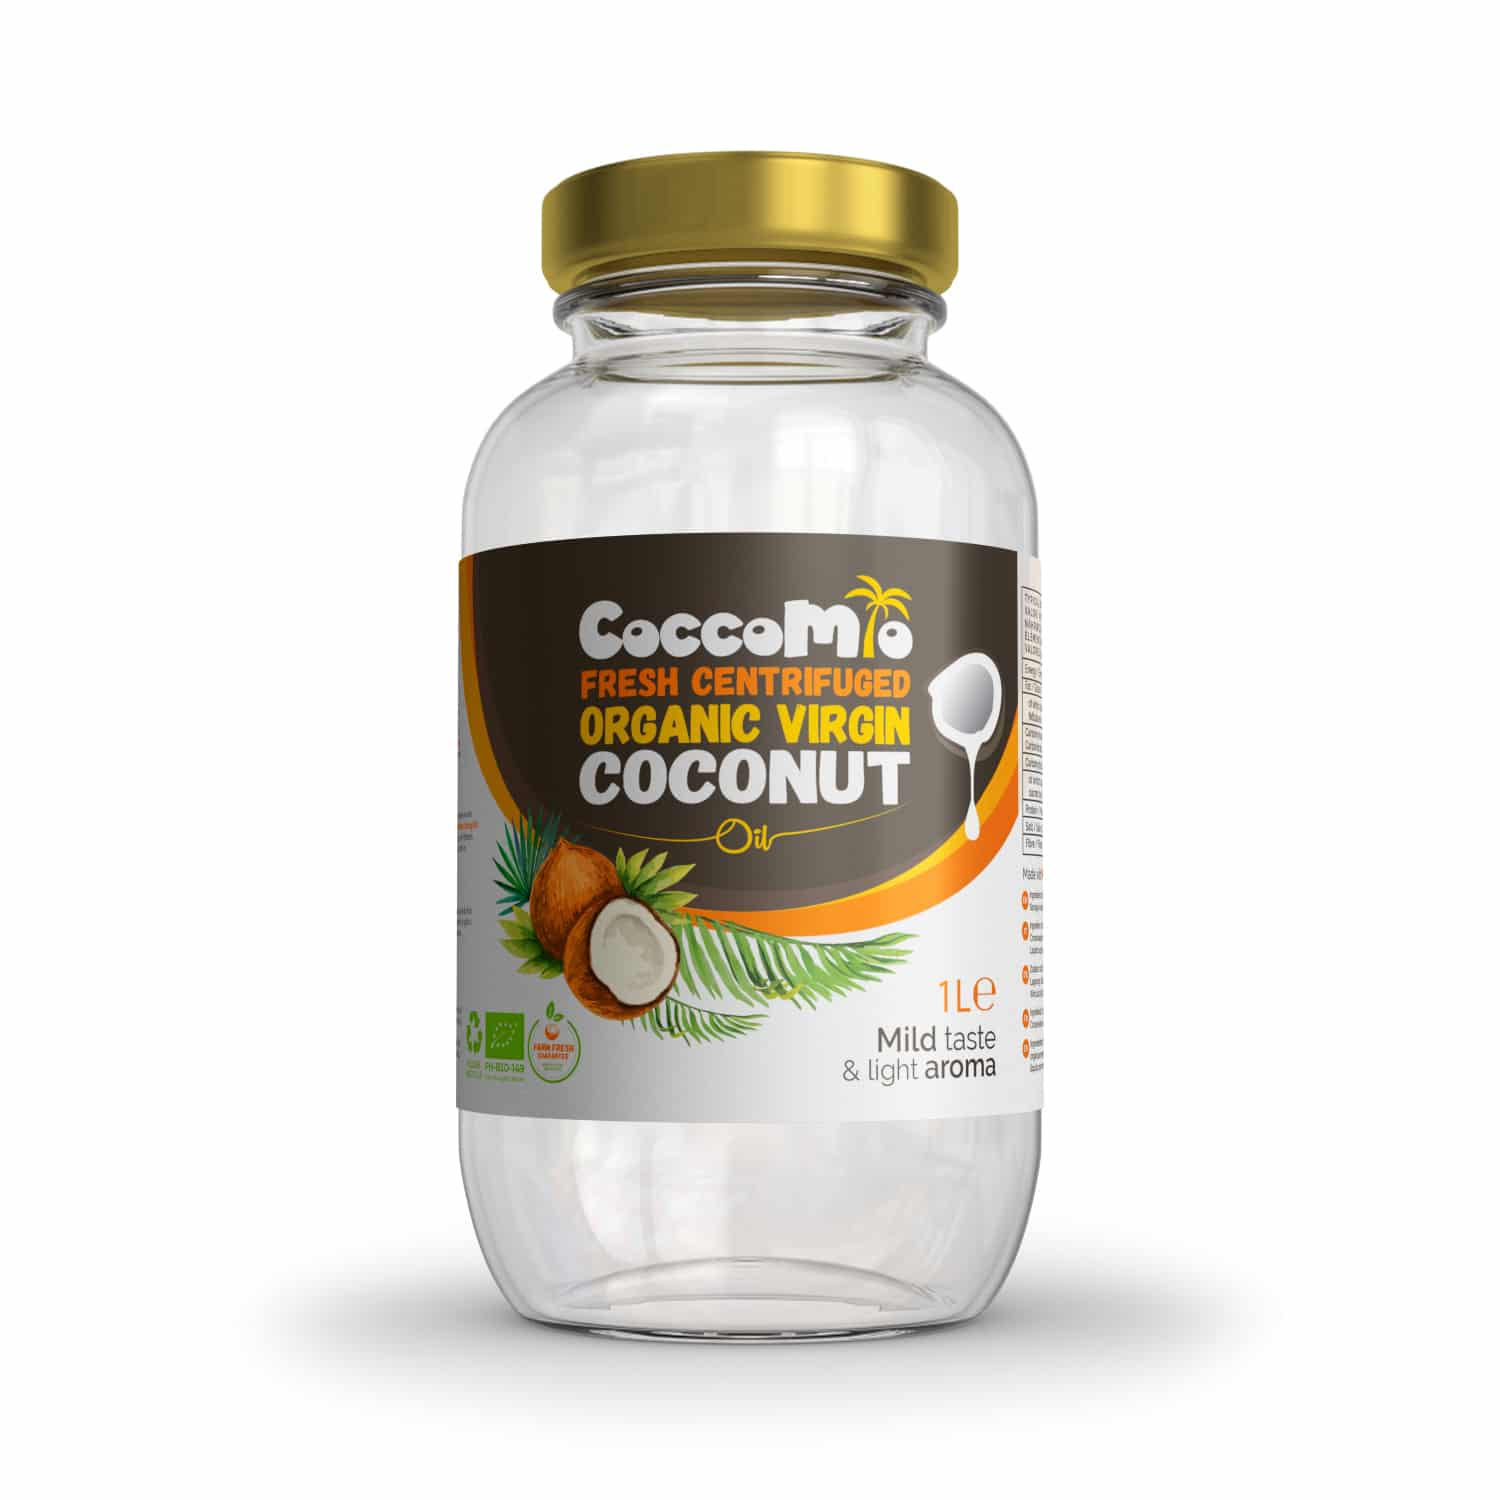 CoccoMio Fresh Centrifuged Organic Virgin Coconut Oil 1L Jar